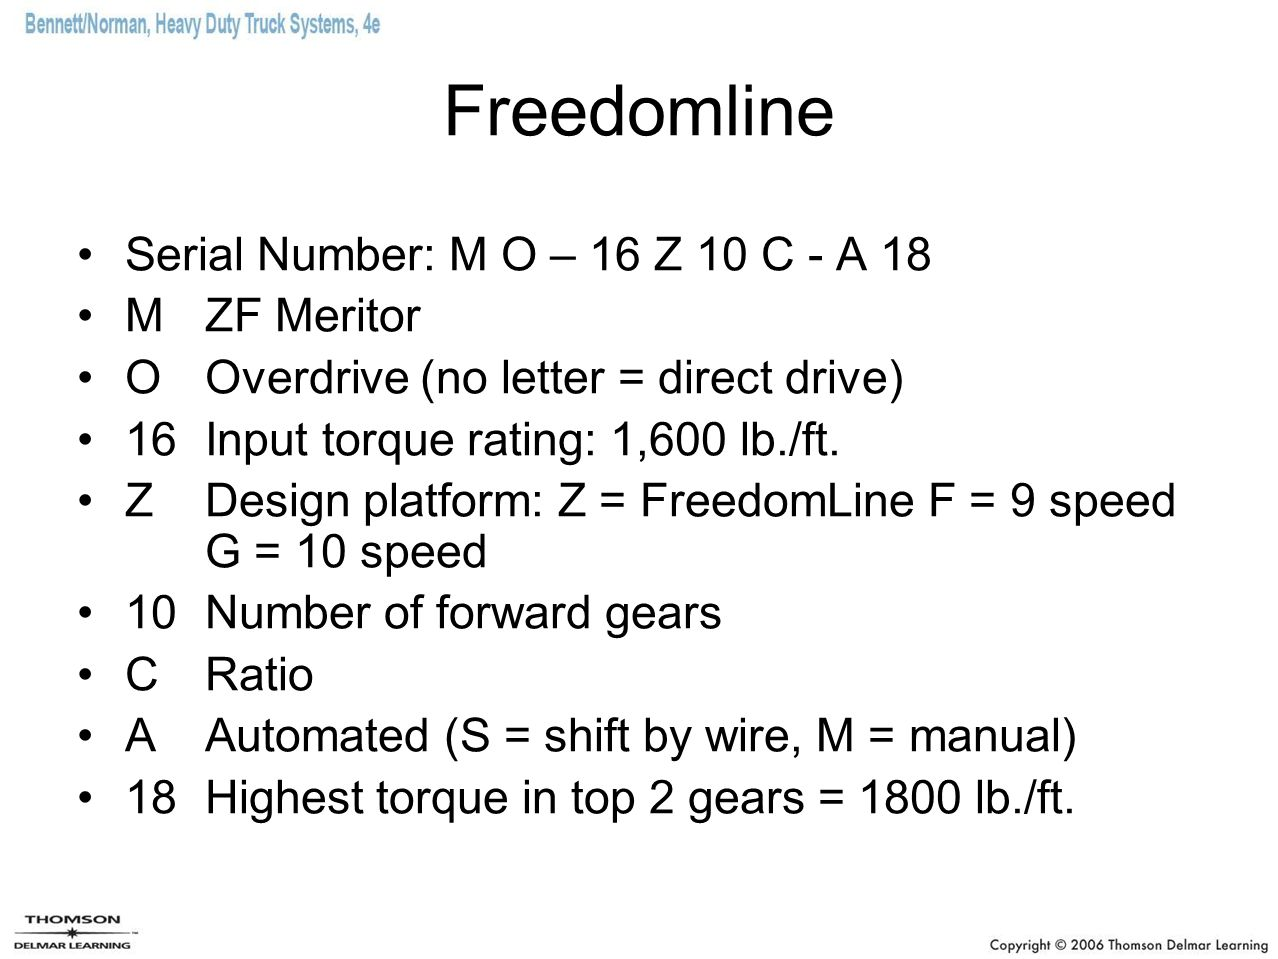 Freedomline Serial Number: M O – 16 Z 10 C - A 18 M ZF Meritor O Overdrive (no letter = direct drive) 16 Input torque rating: 1,600 lb./ft. Z Design p